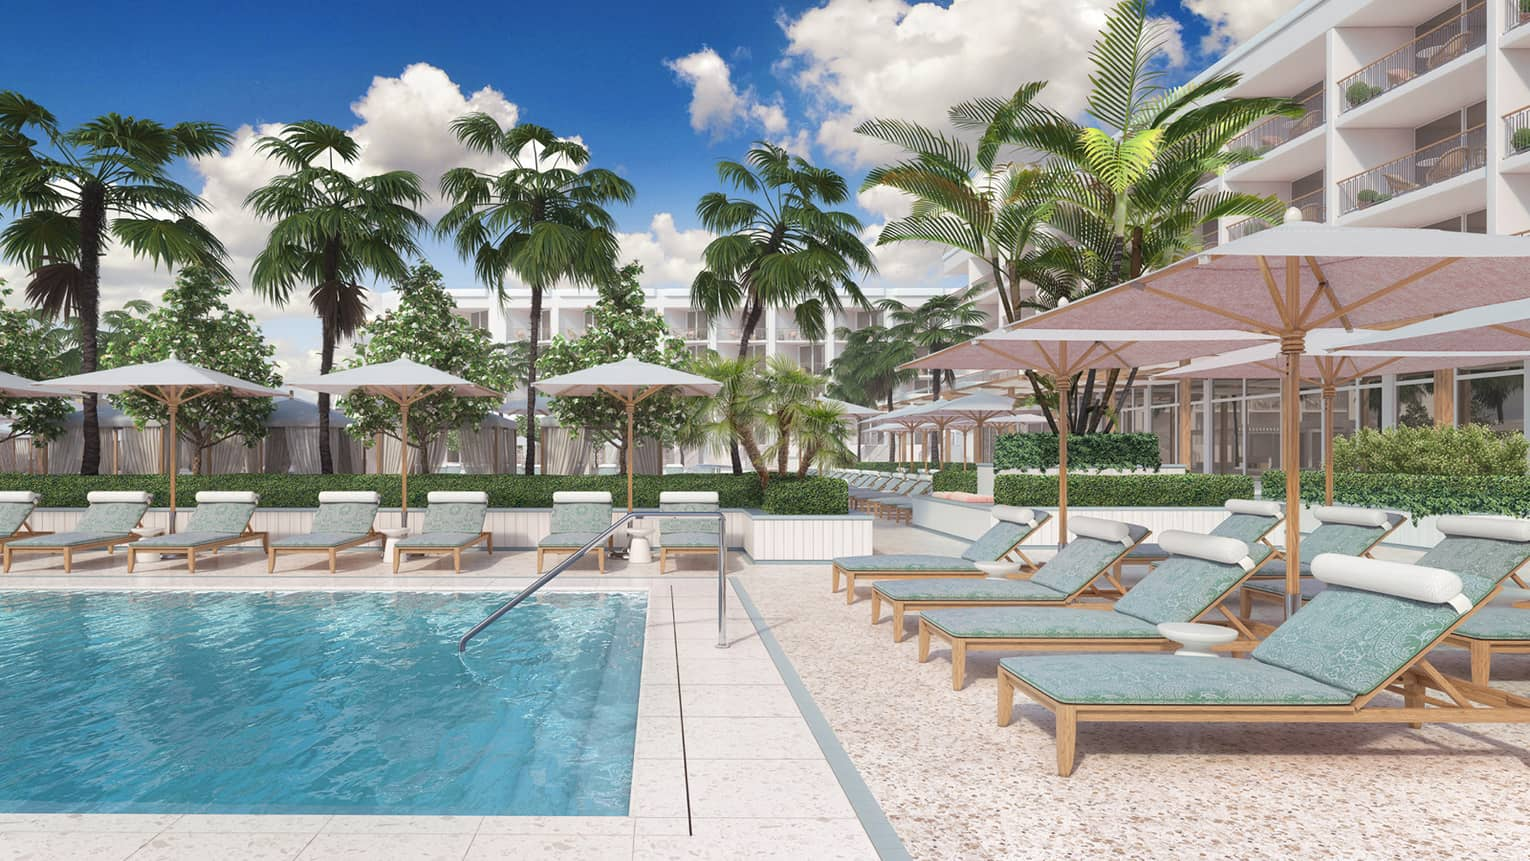 Teal lounge chairs with individual umbrellas displayed around an outdoor pool with palm trees in the background